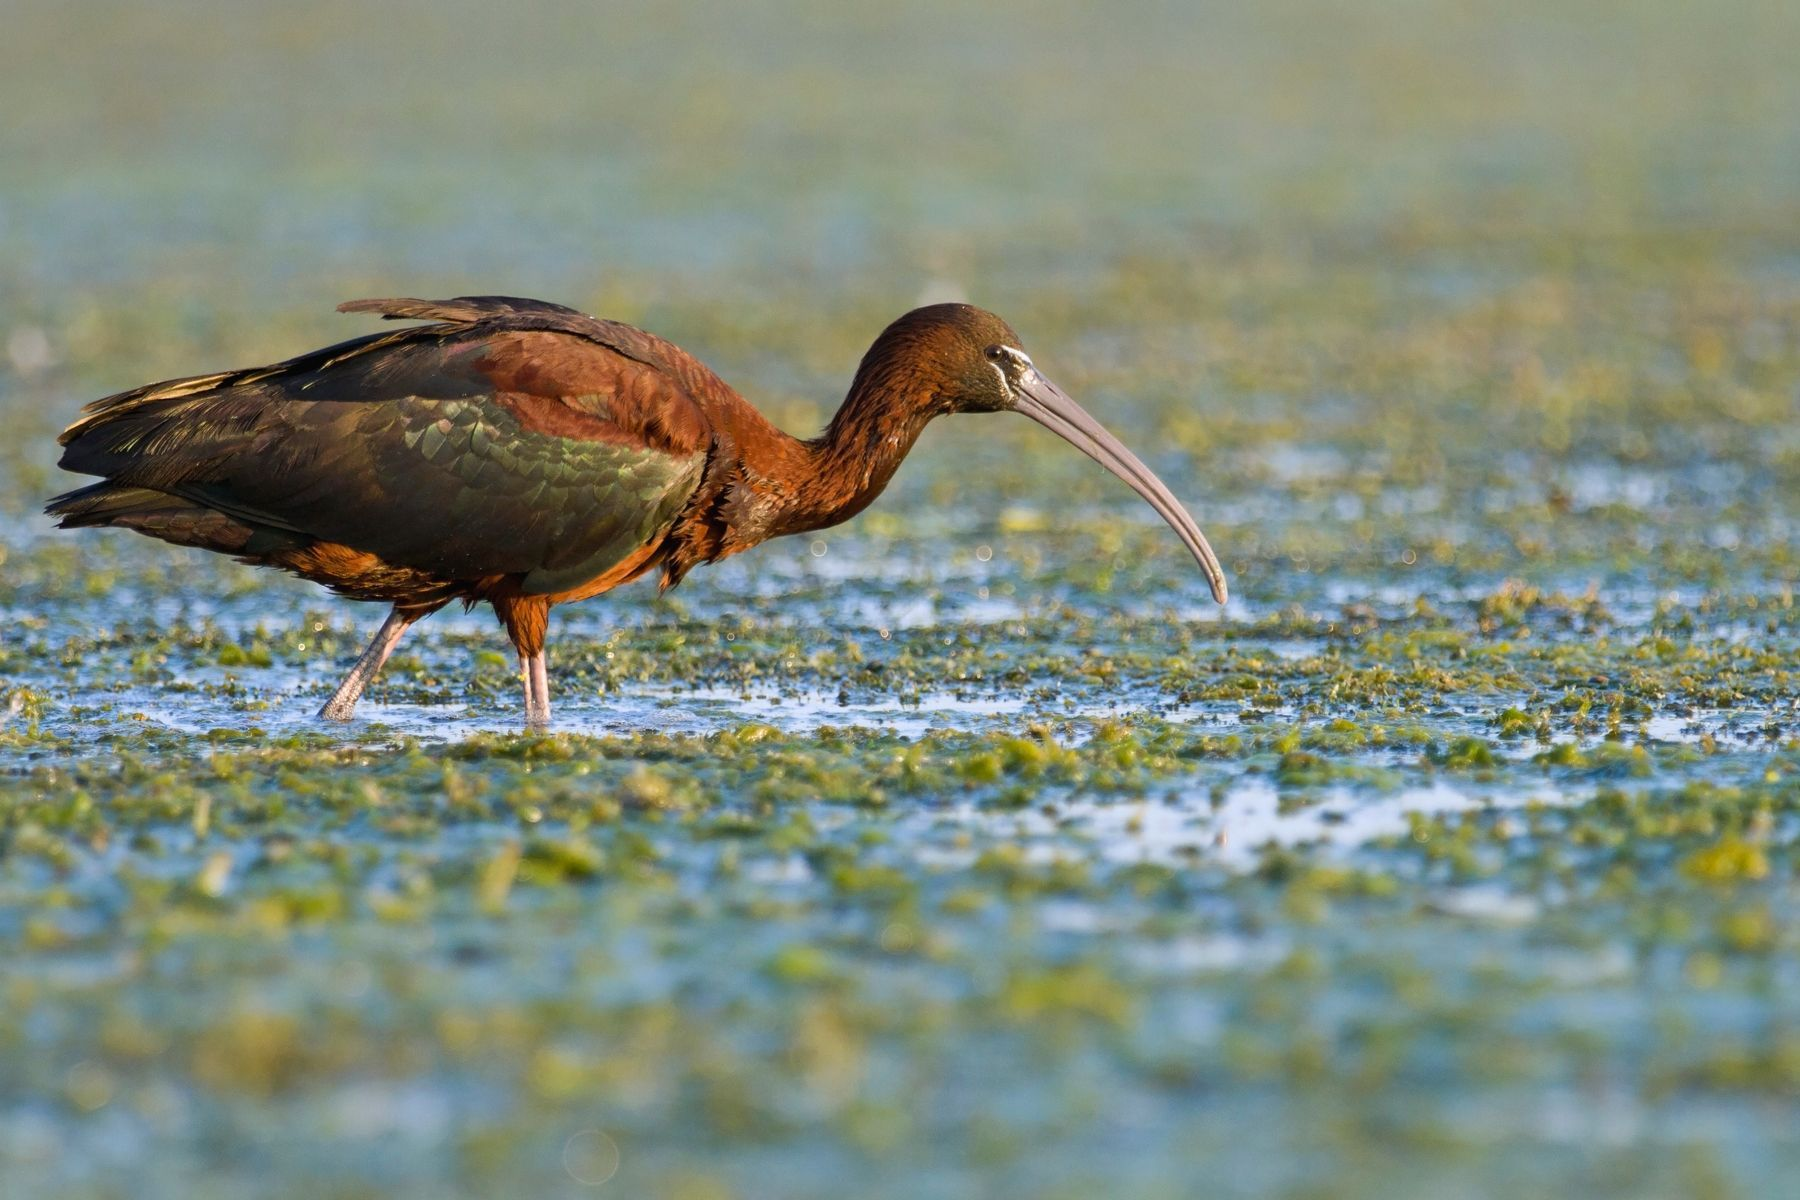 The Glossy Ibis is a characteristic bird of Romania's Danube Delta